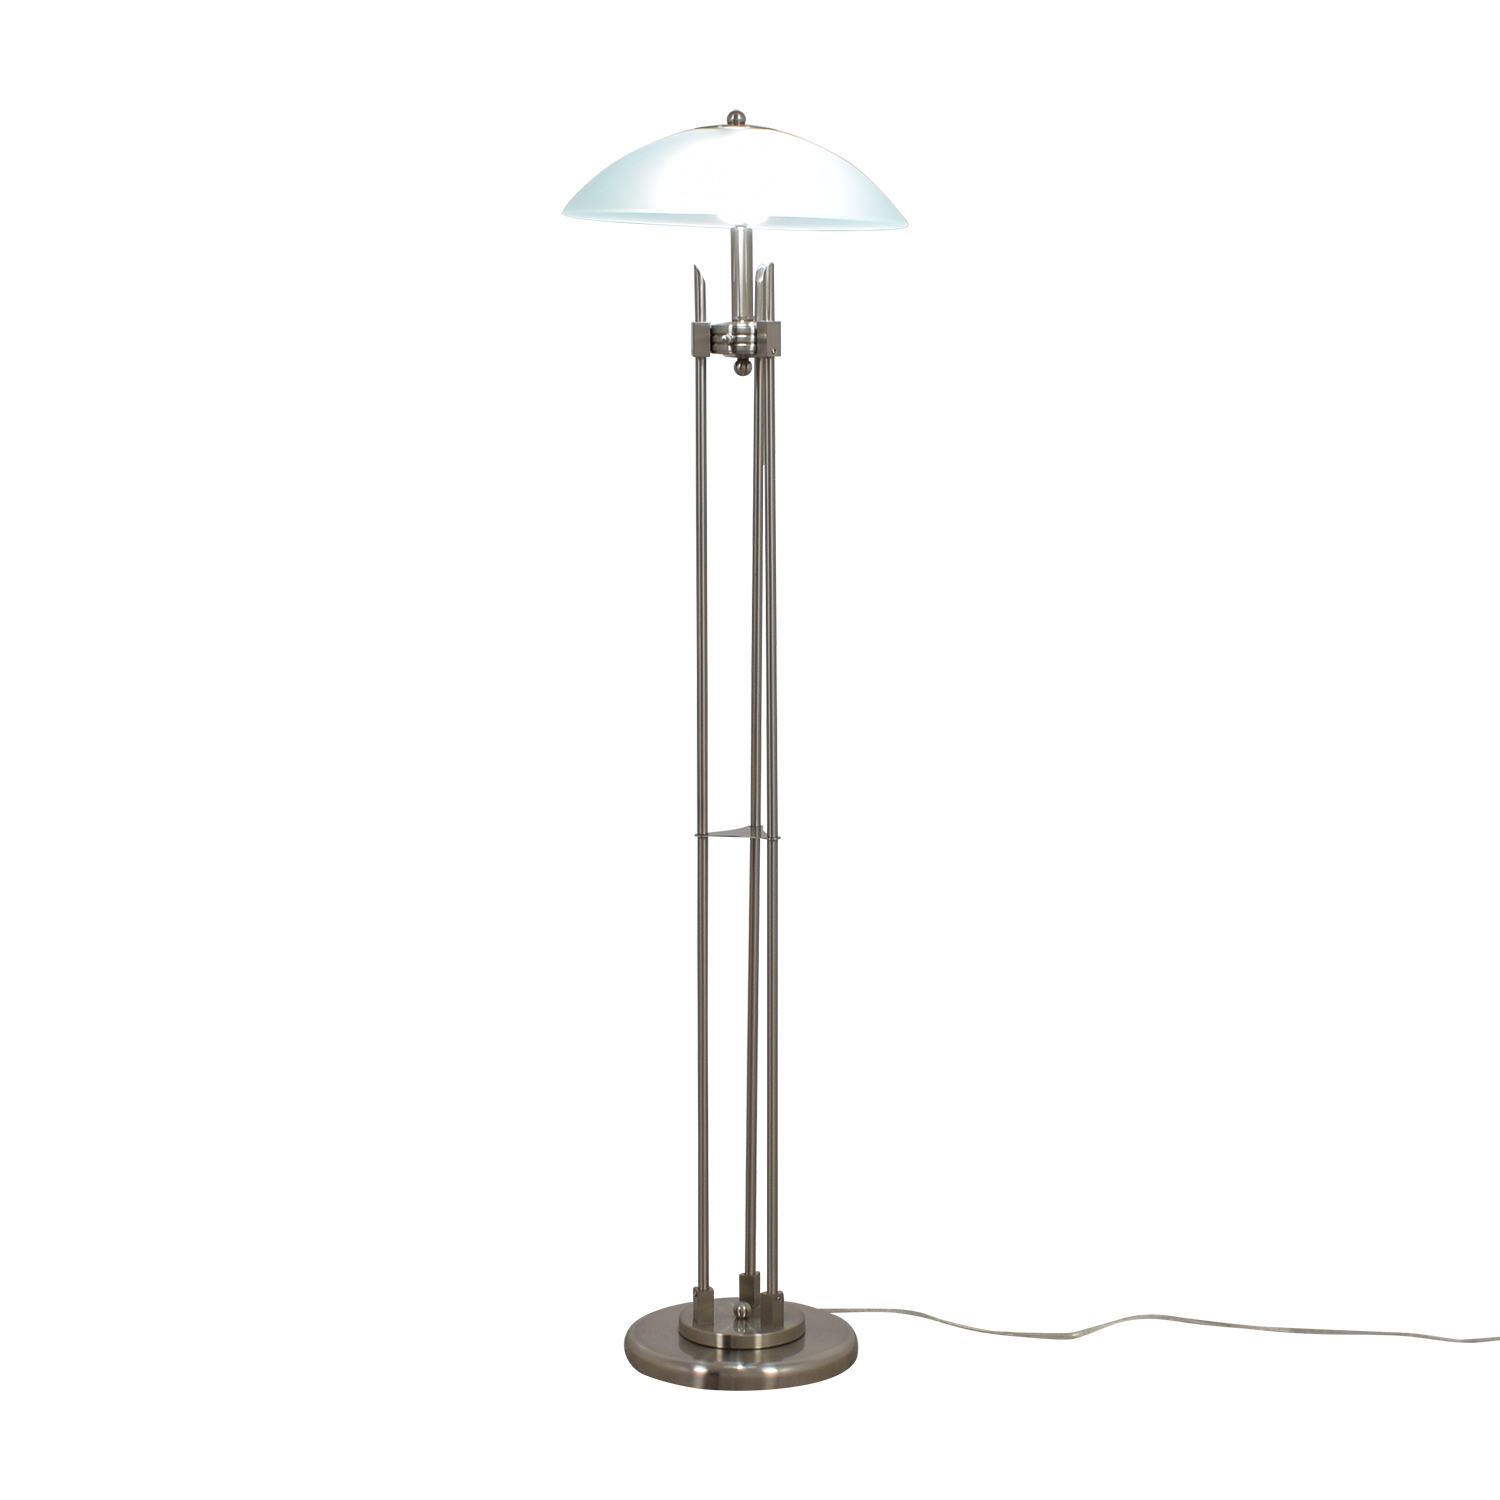 66 off stainless steel floor lamp decor stainless steel floor lamp nyc aloadofball Images